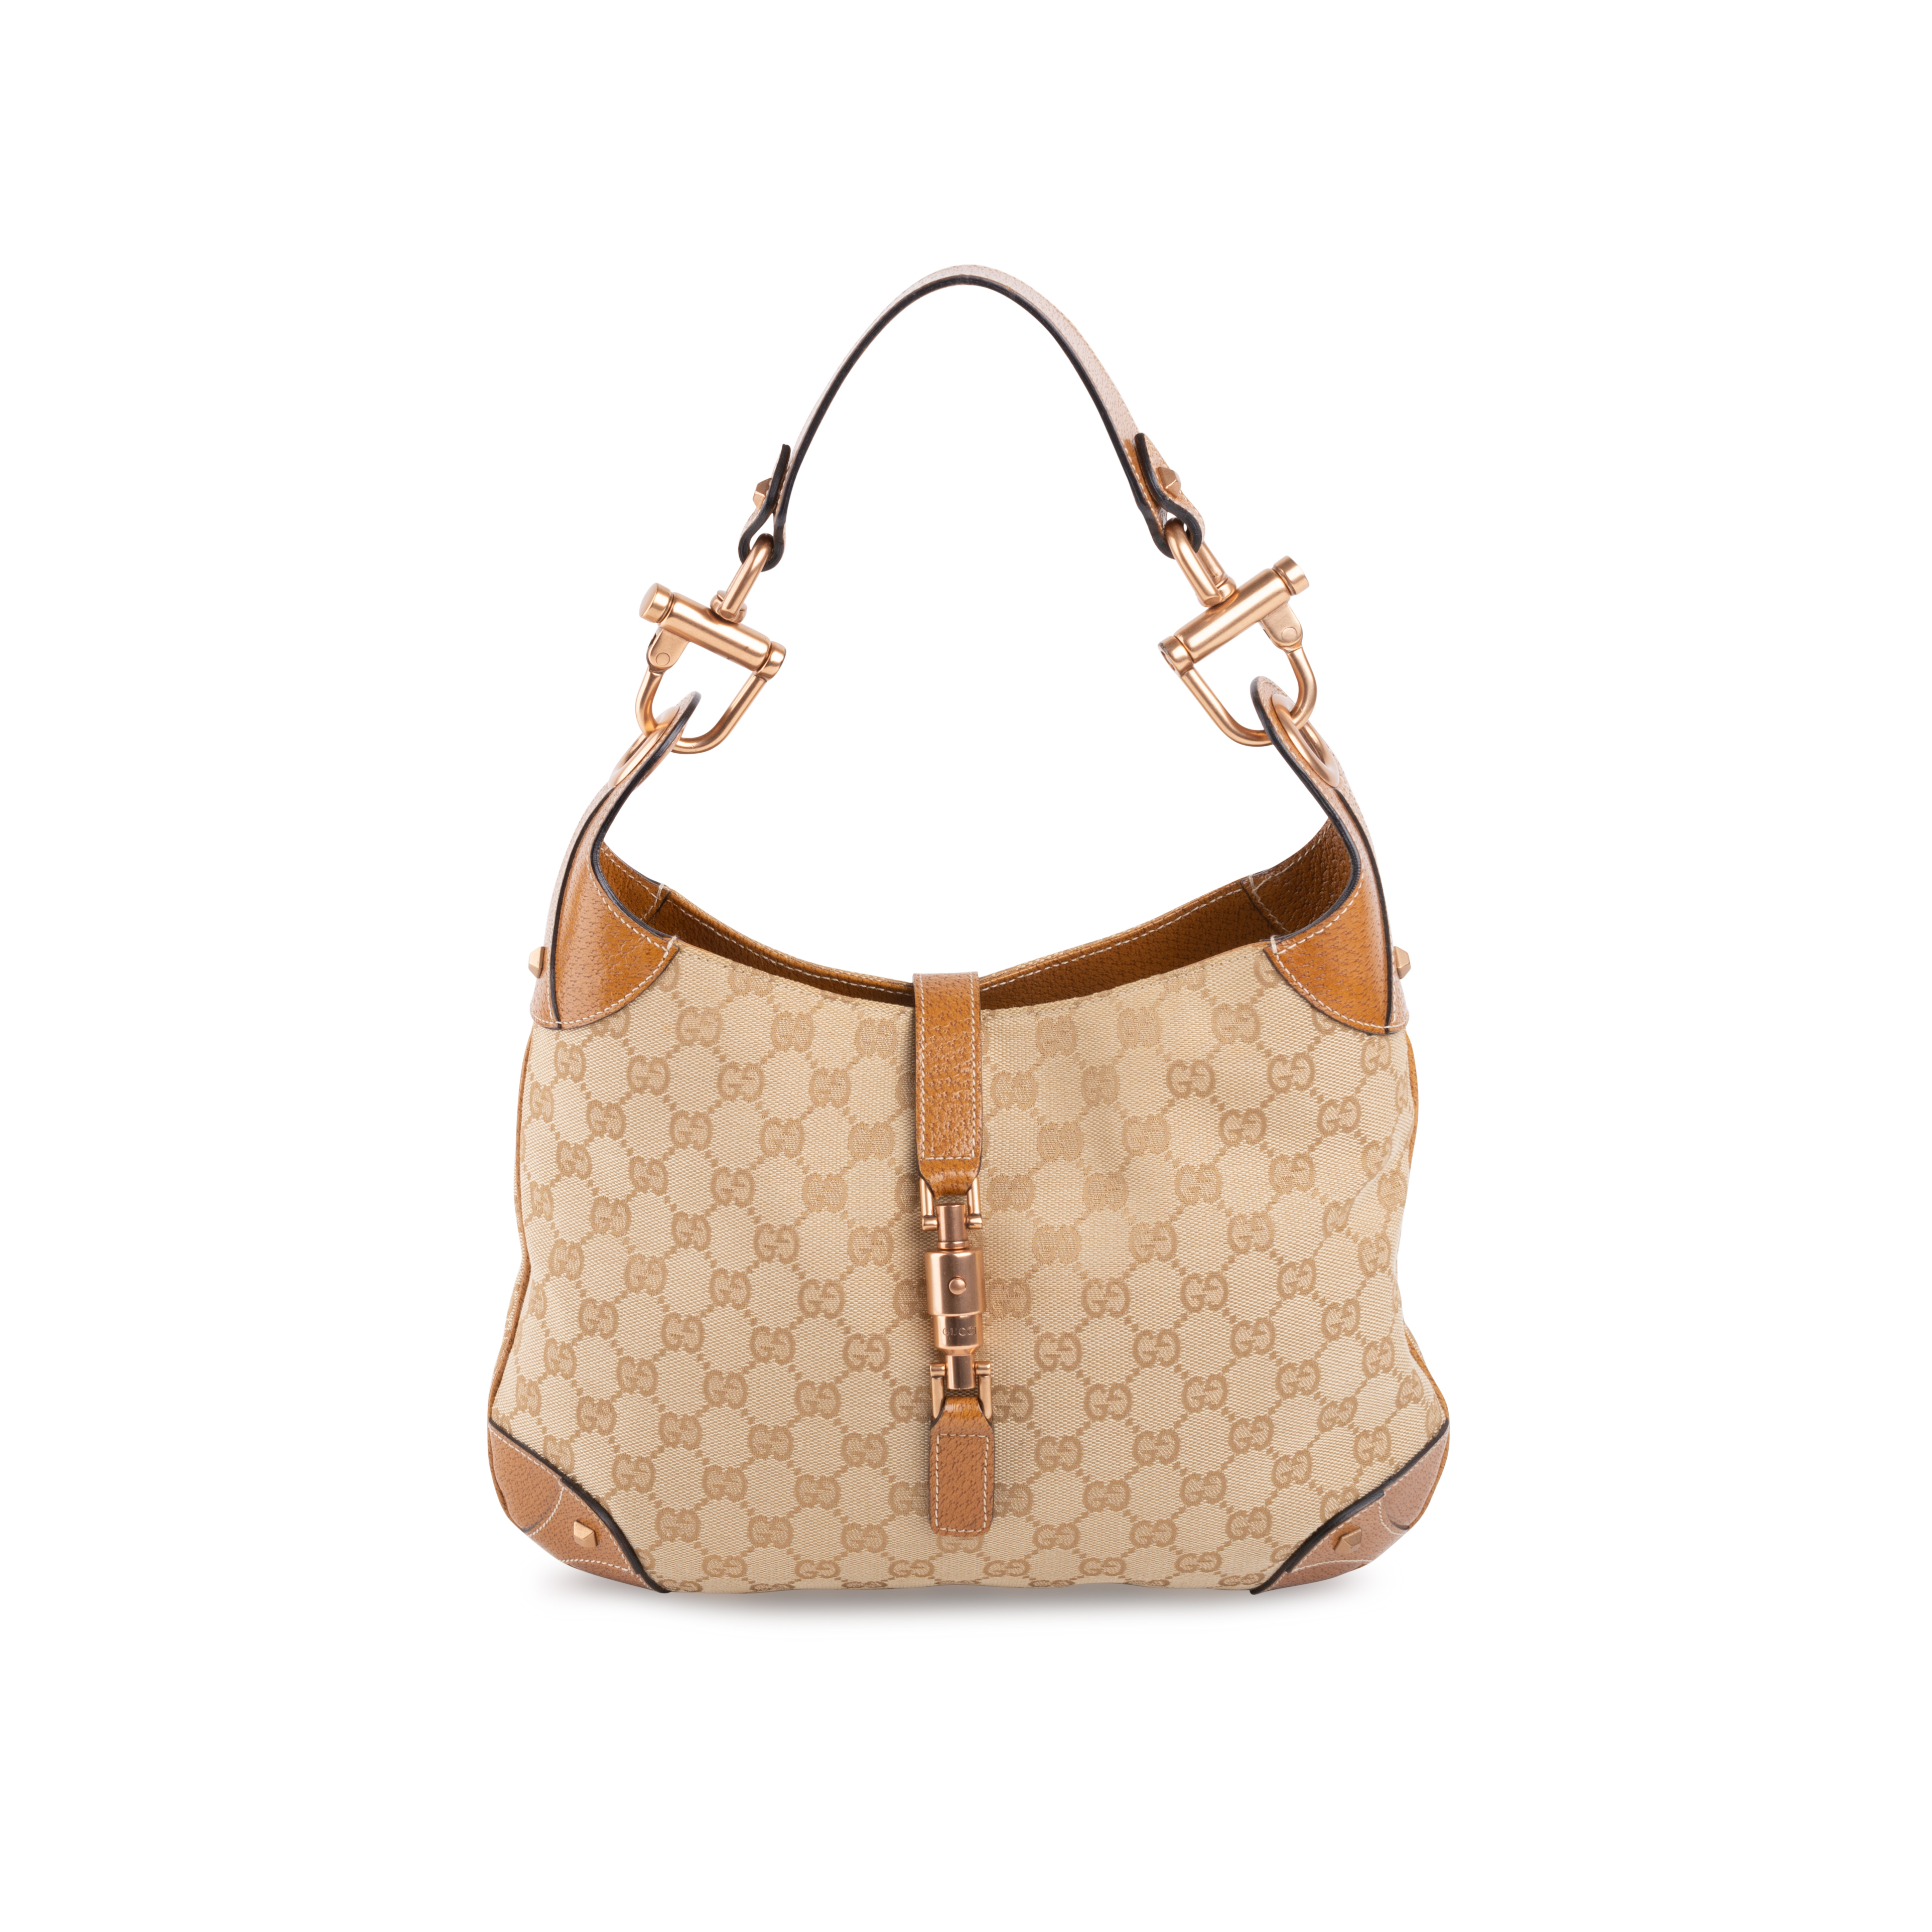 e5f40087f Authentic Second Hand Gucci Monogram Jackie O Hobo Bag (PSS-698-00001) -  THE FIFTH COLLECTION